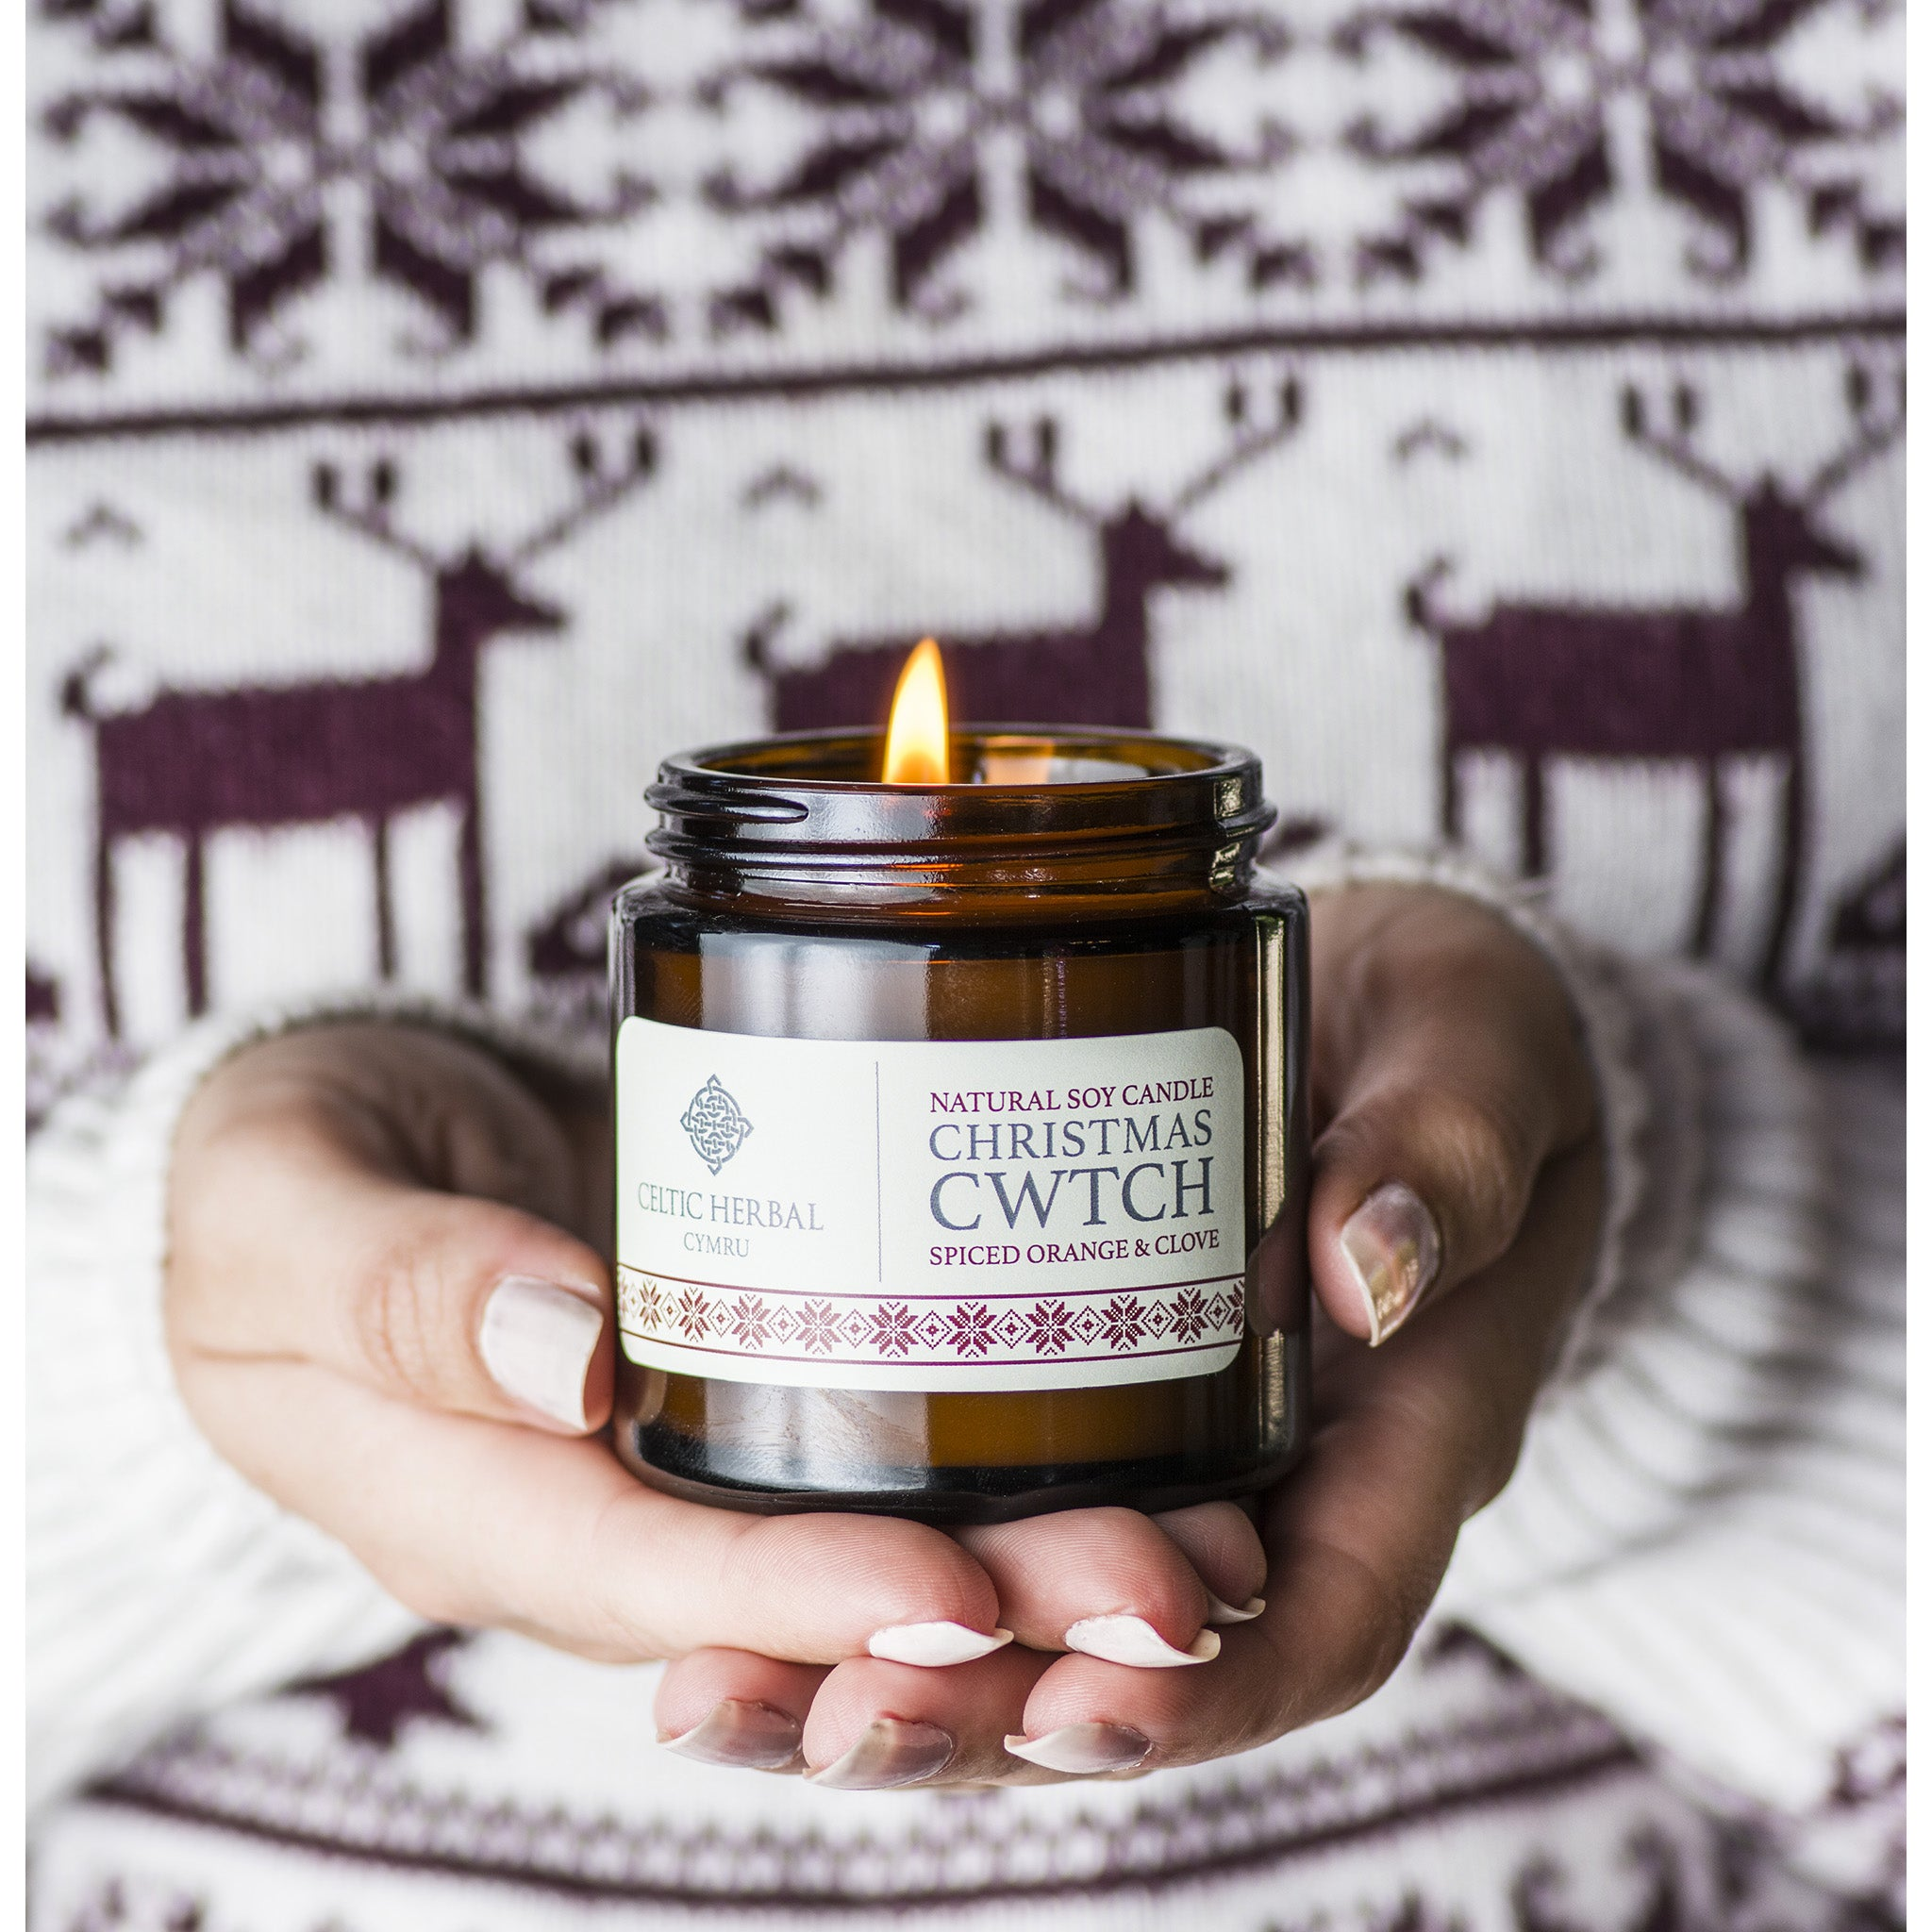 Christmas Cwtch Soy Candle with Spiced Orange & Clove